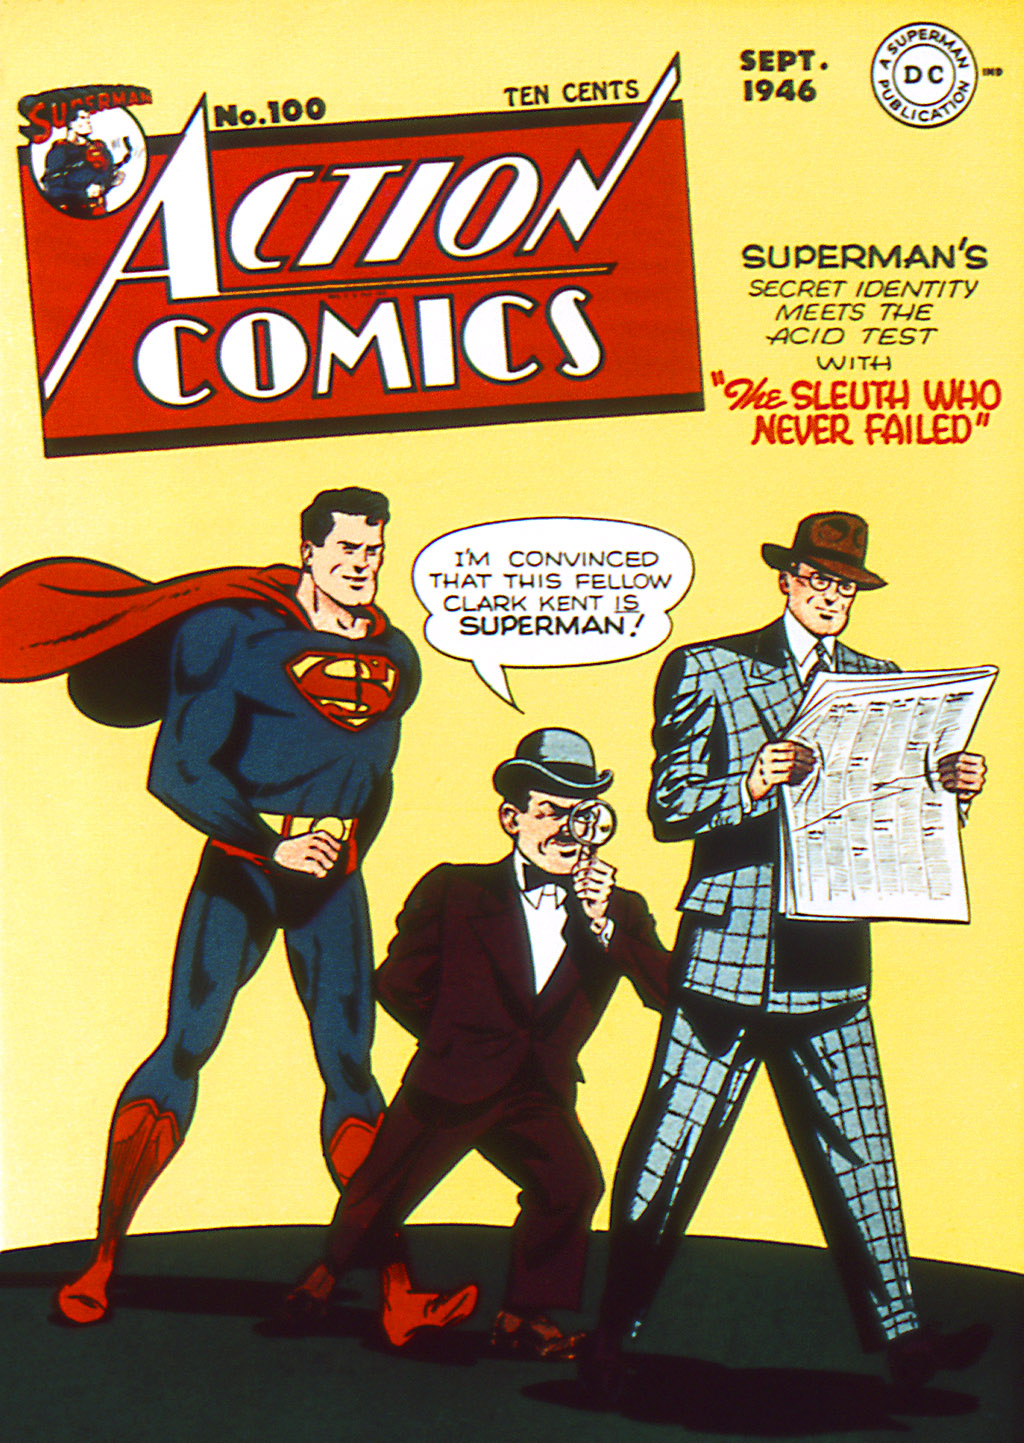 Read online Action Comics (1938) comic -  Issue #100 - 1